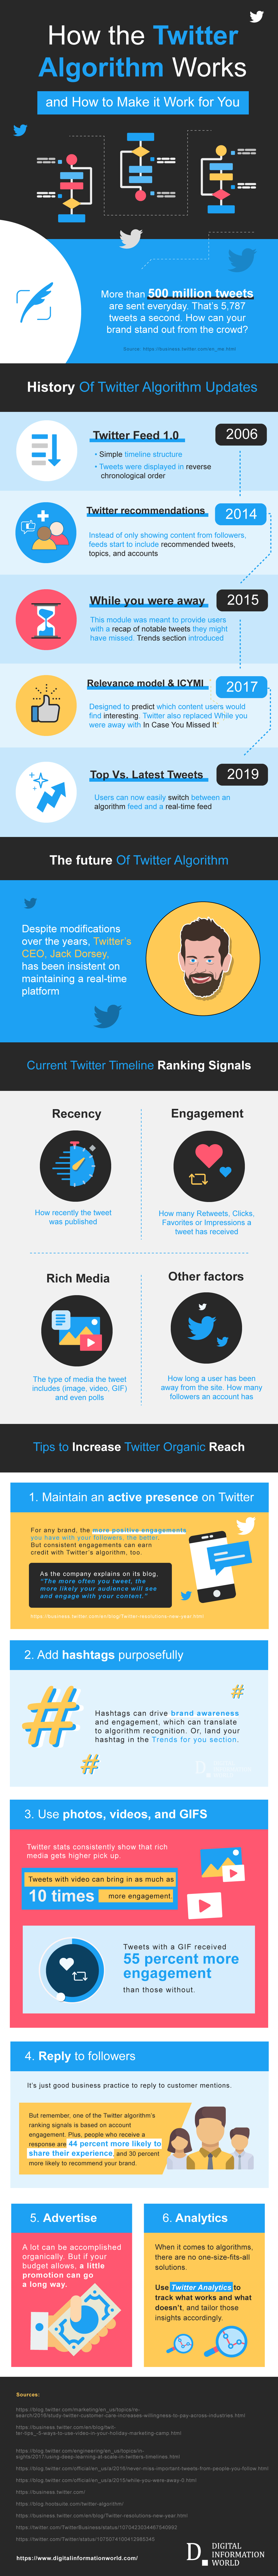 Getting to Know the Twitter Algorithm